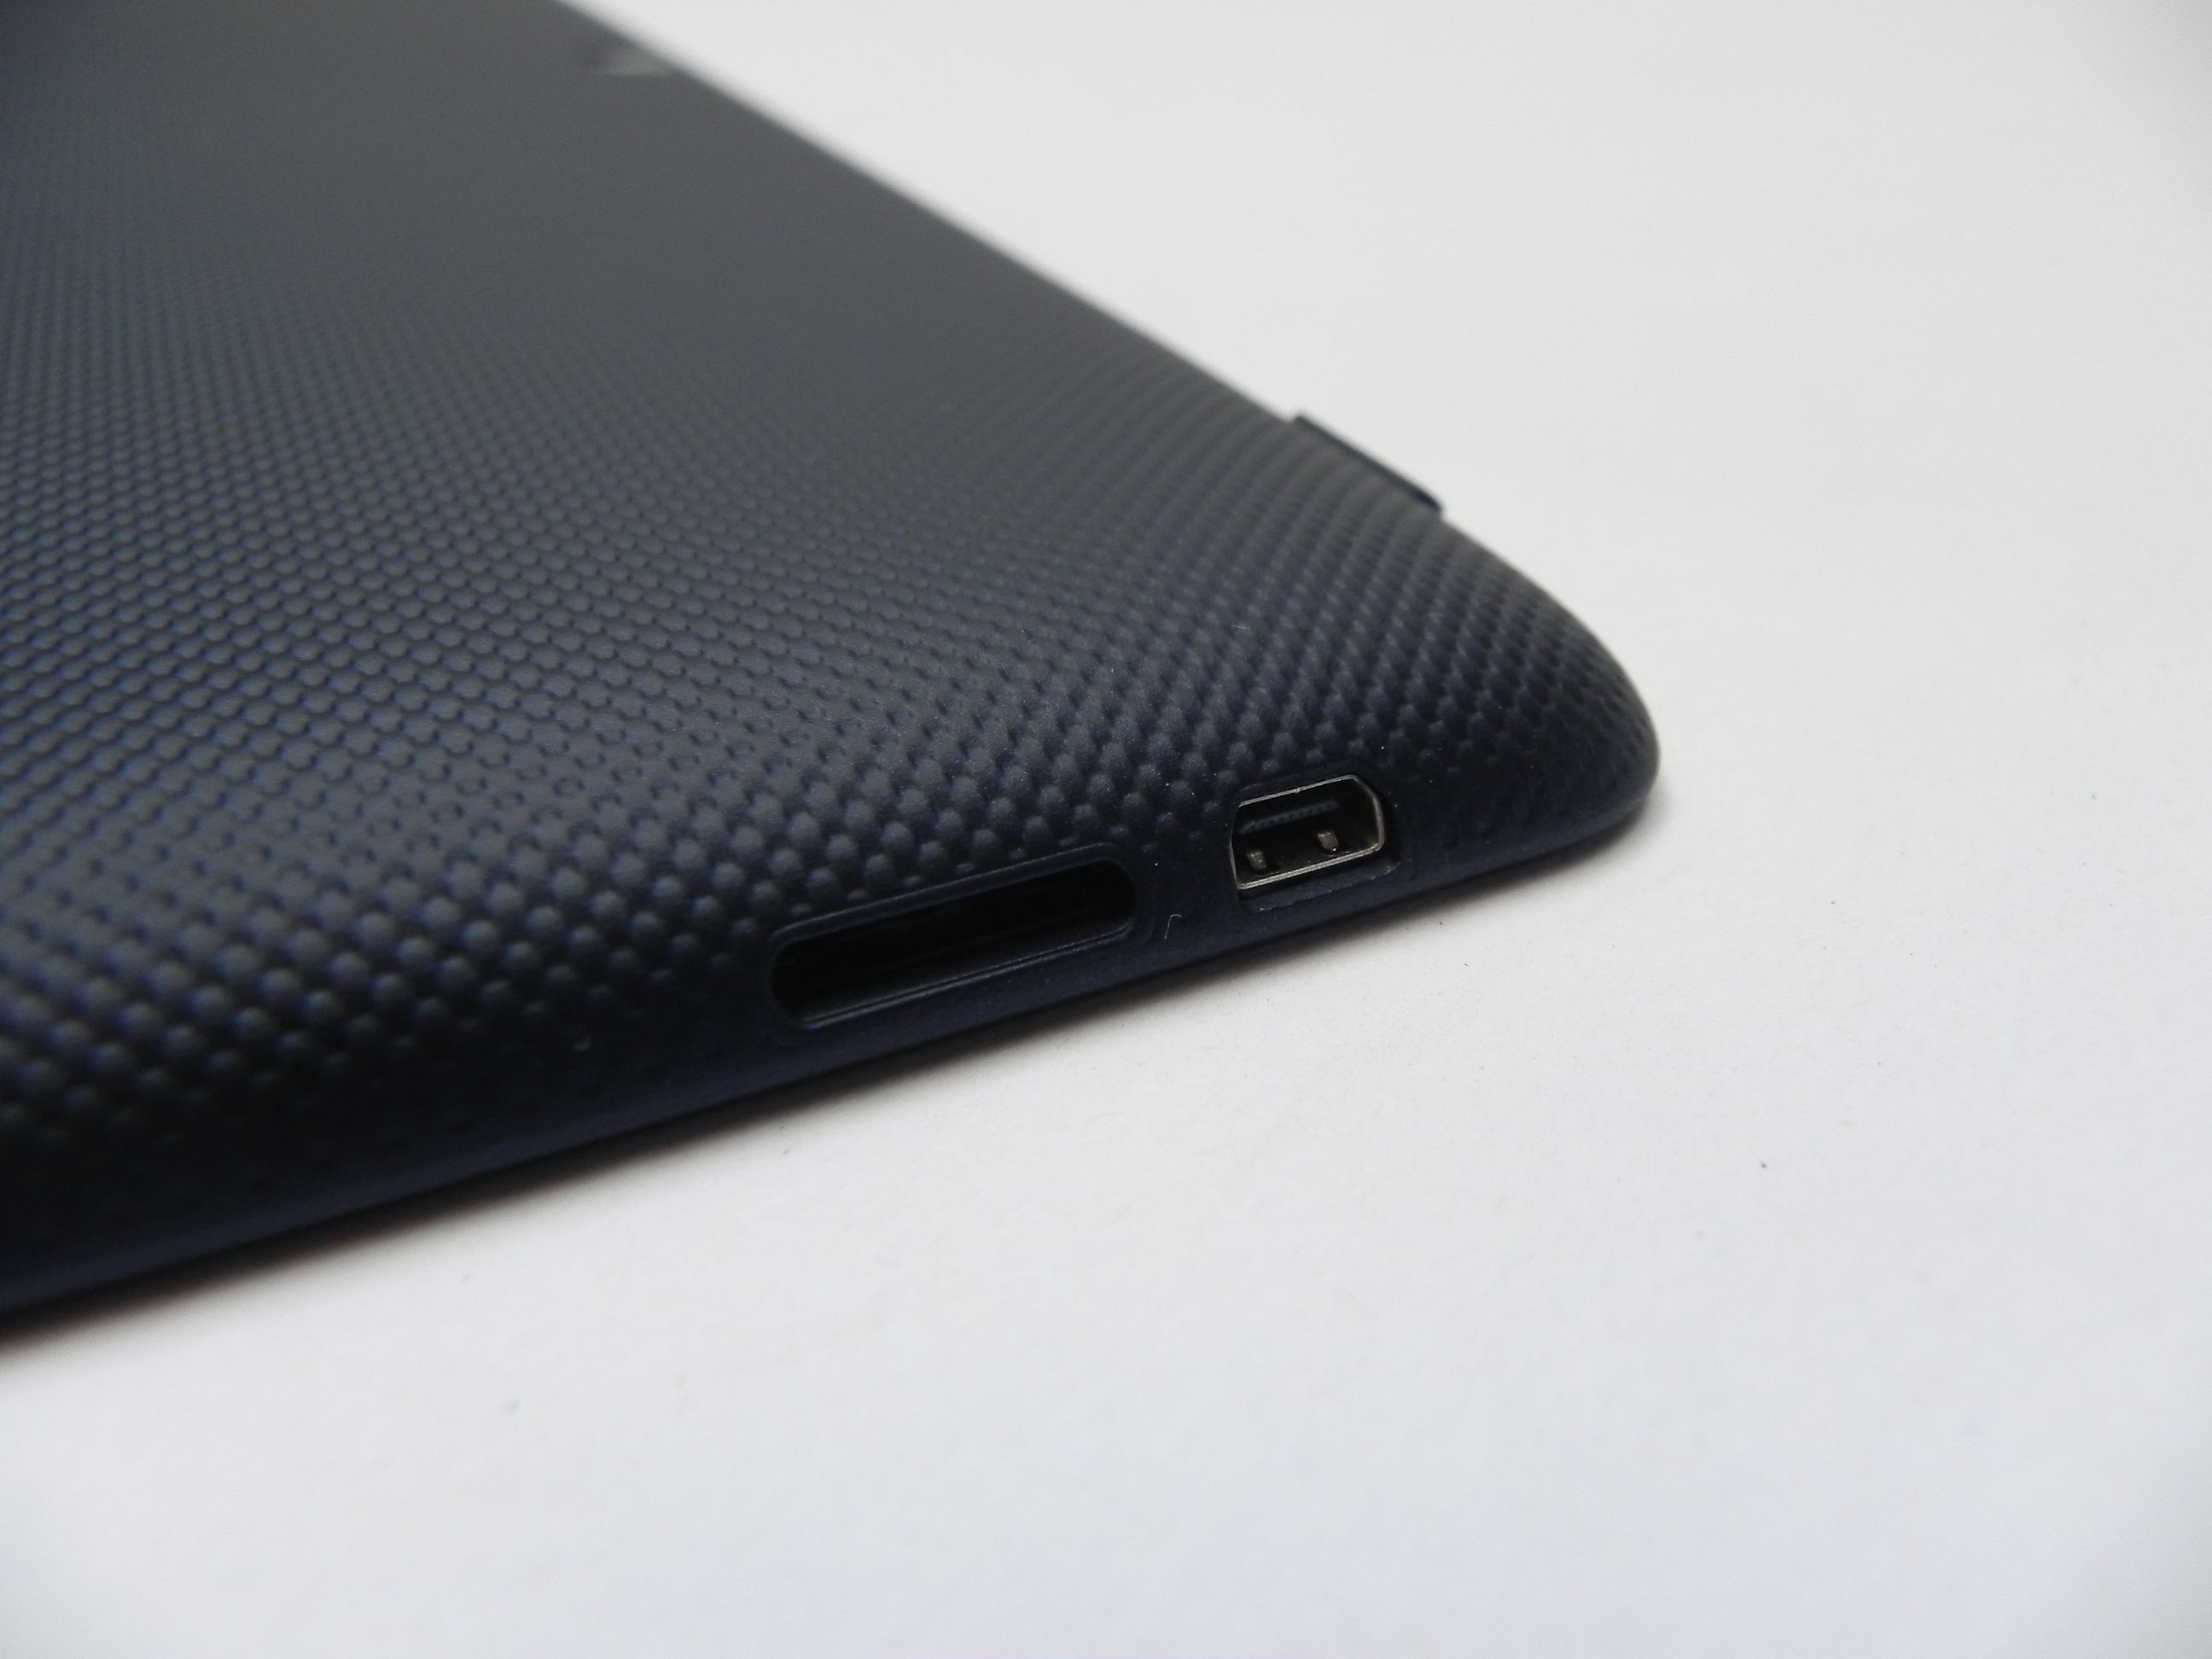 memo review The asus memo pad 8 is an affordable slate with tons of features, but if performance is king, faster options can be had for only $30 more.